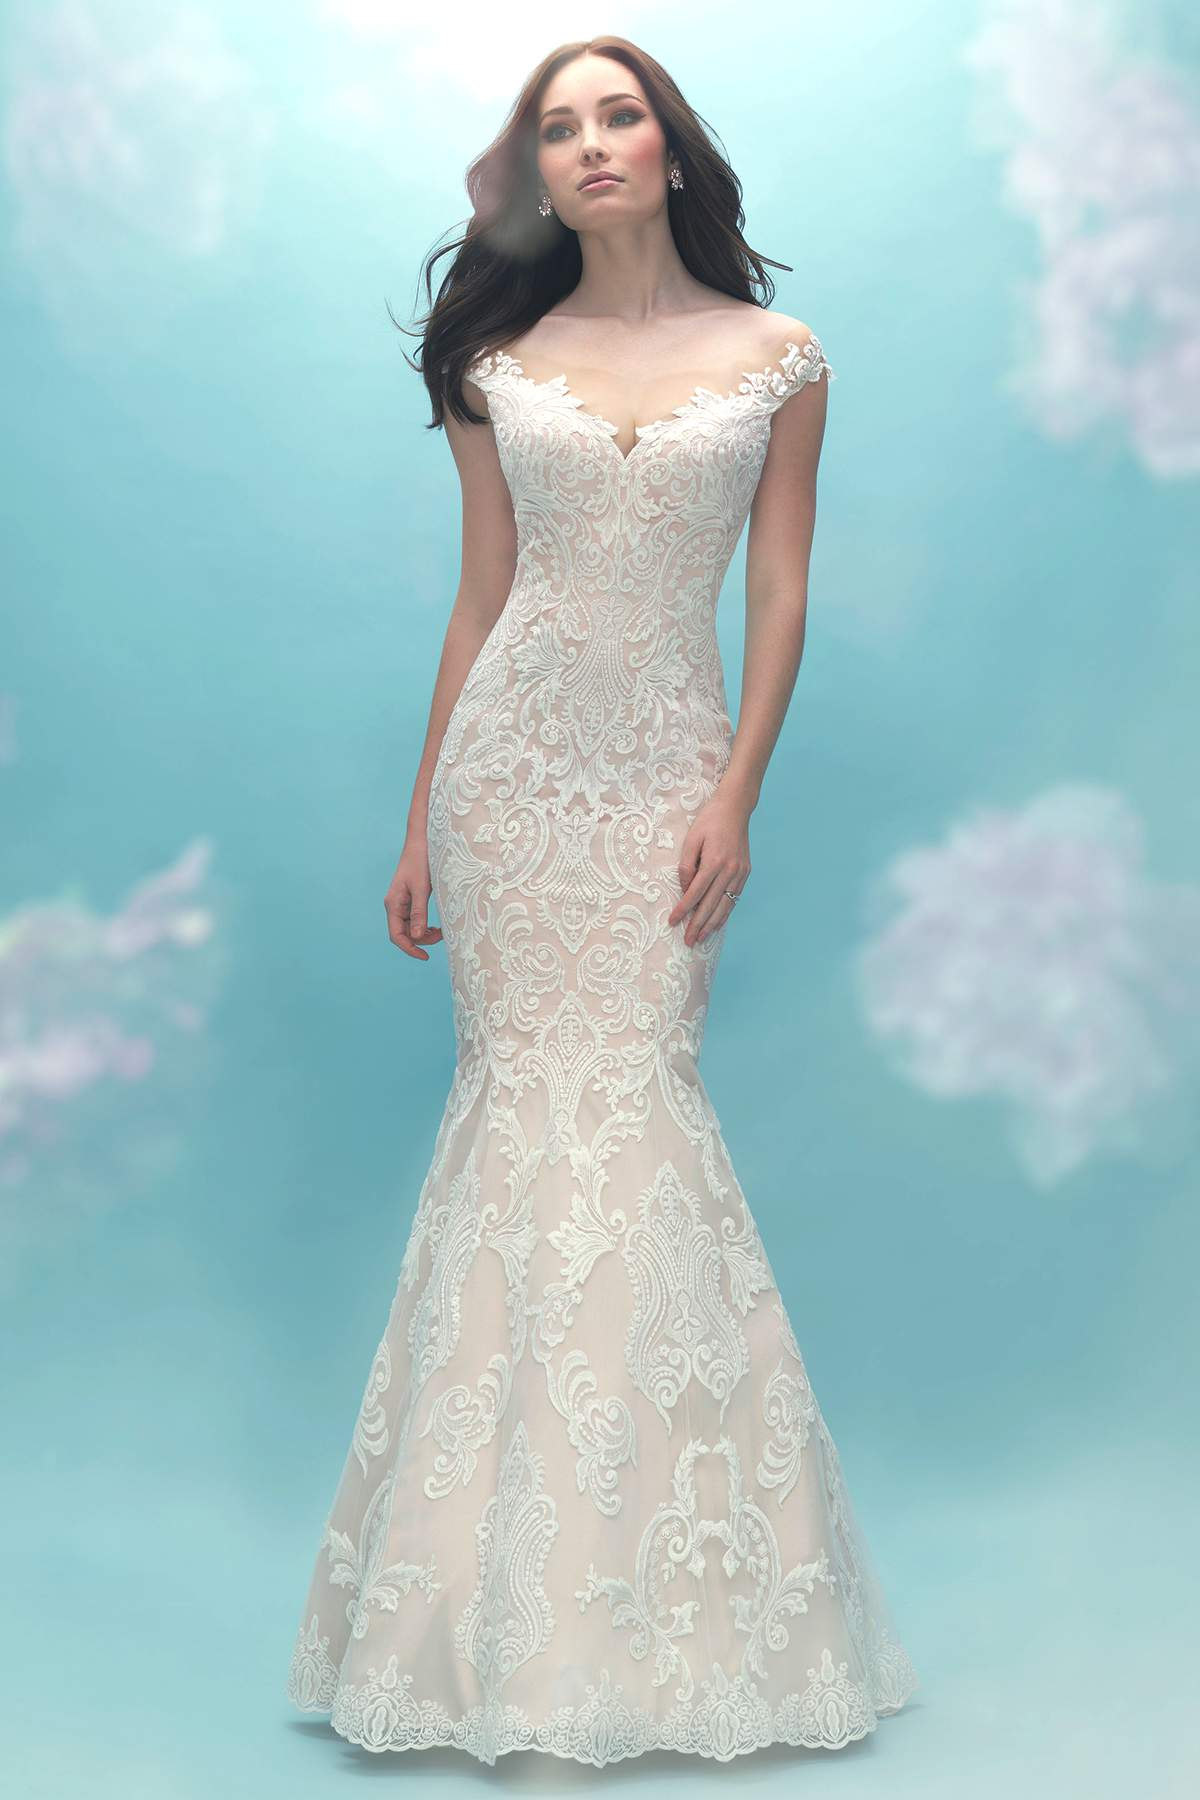 Style 9474 by Allure Bridals - Find Your Dream Dress